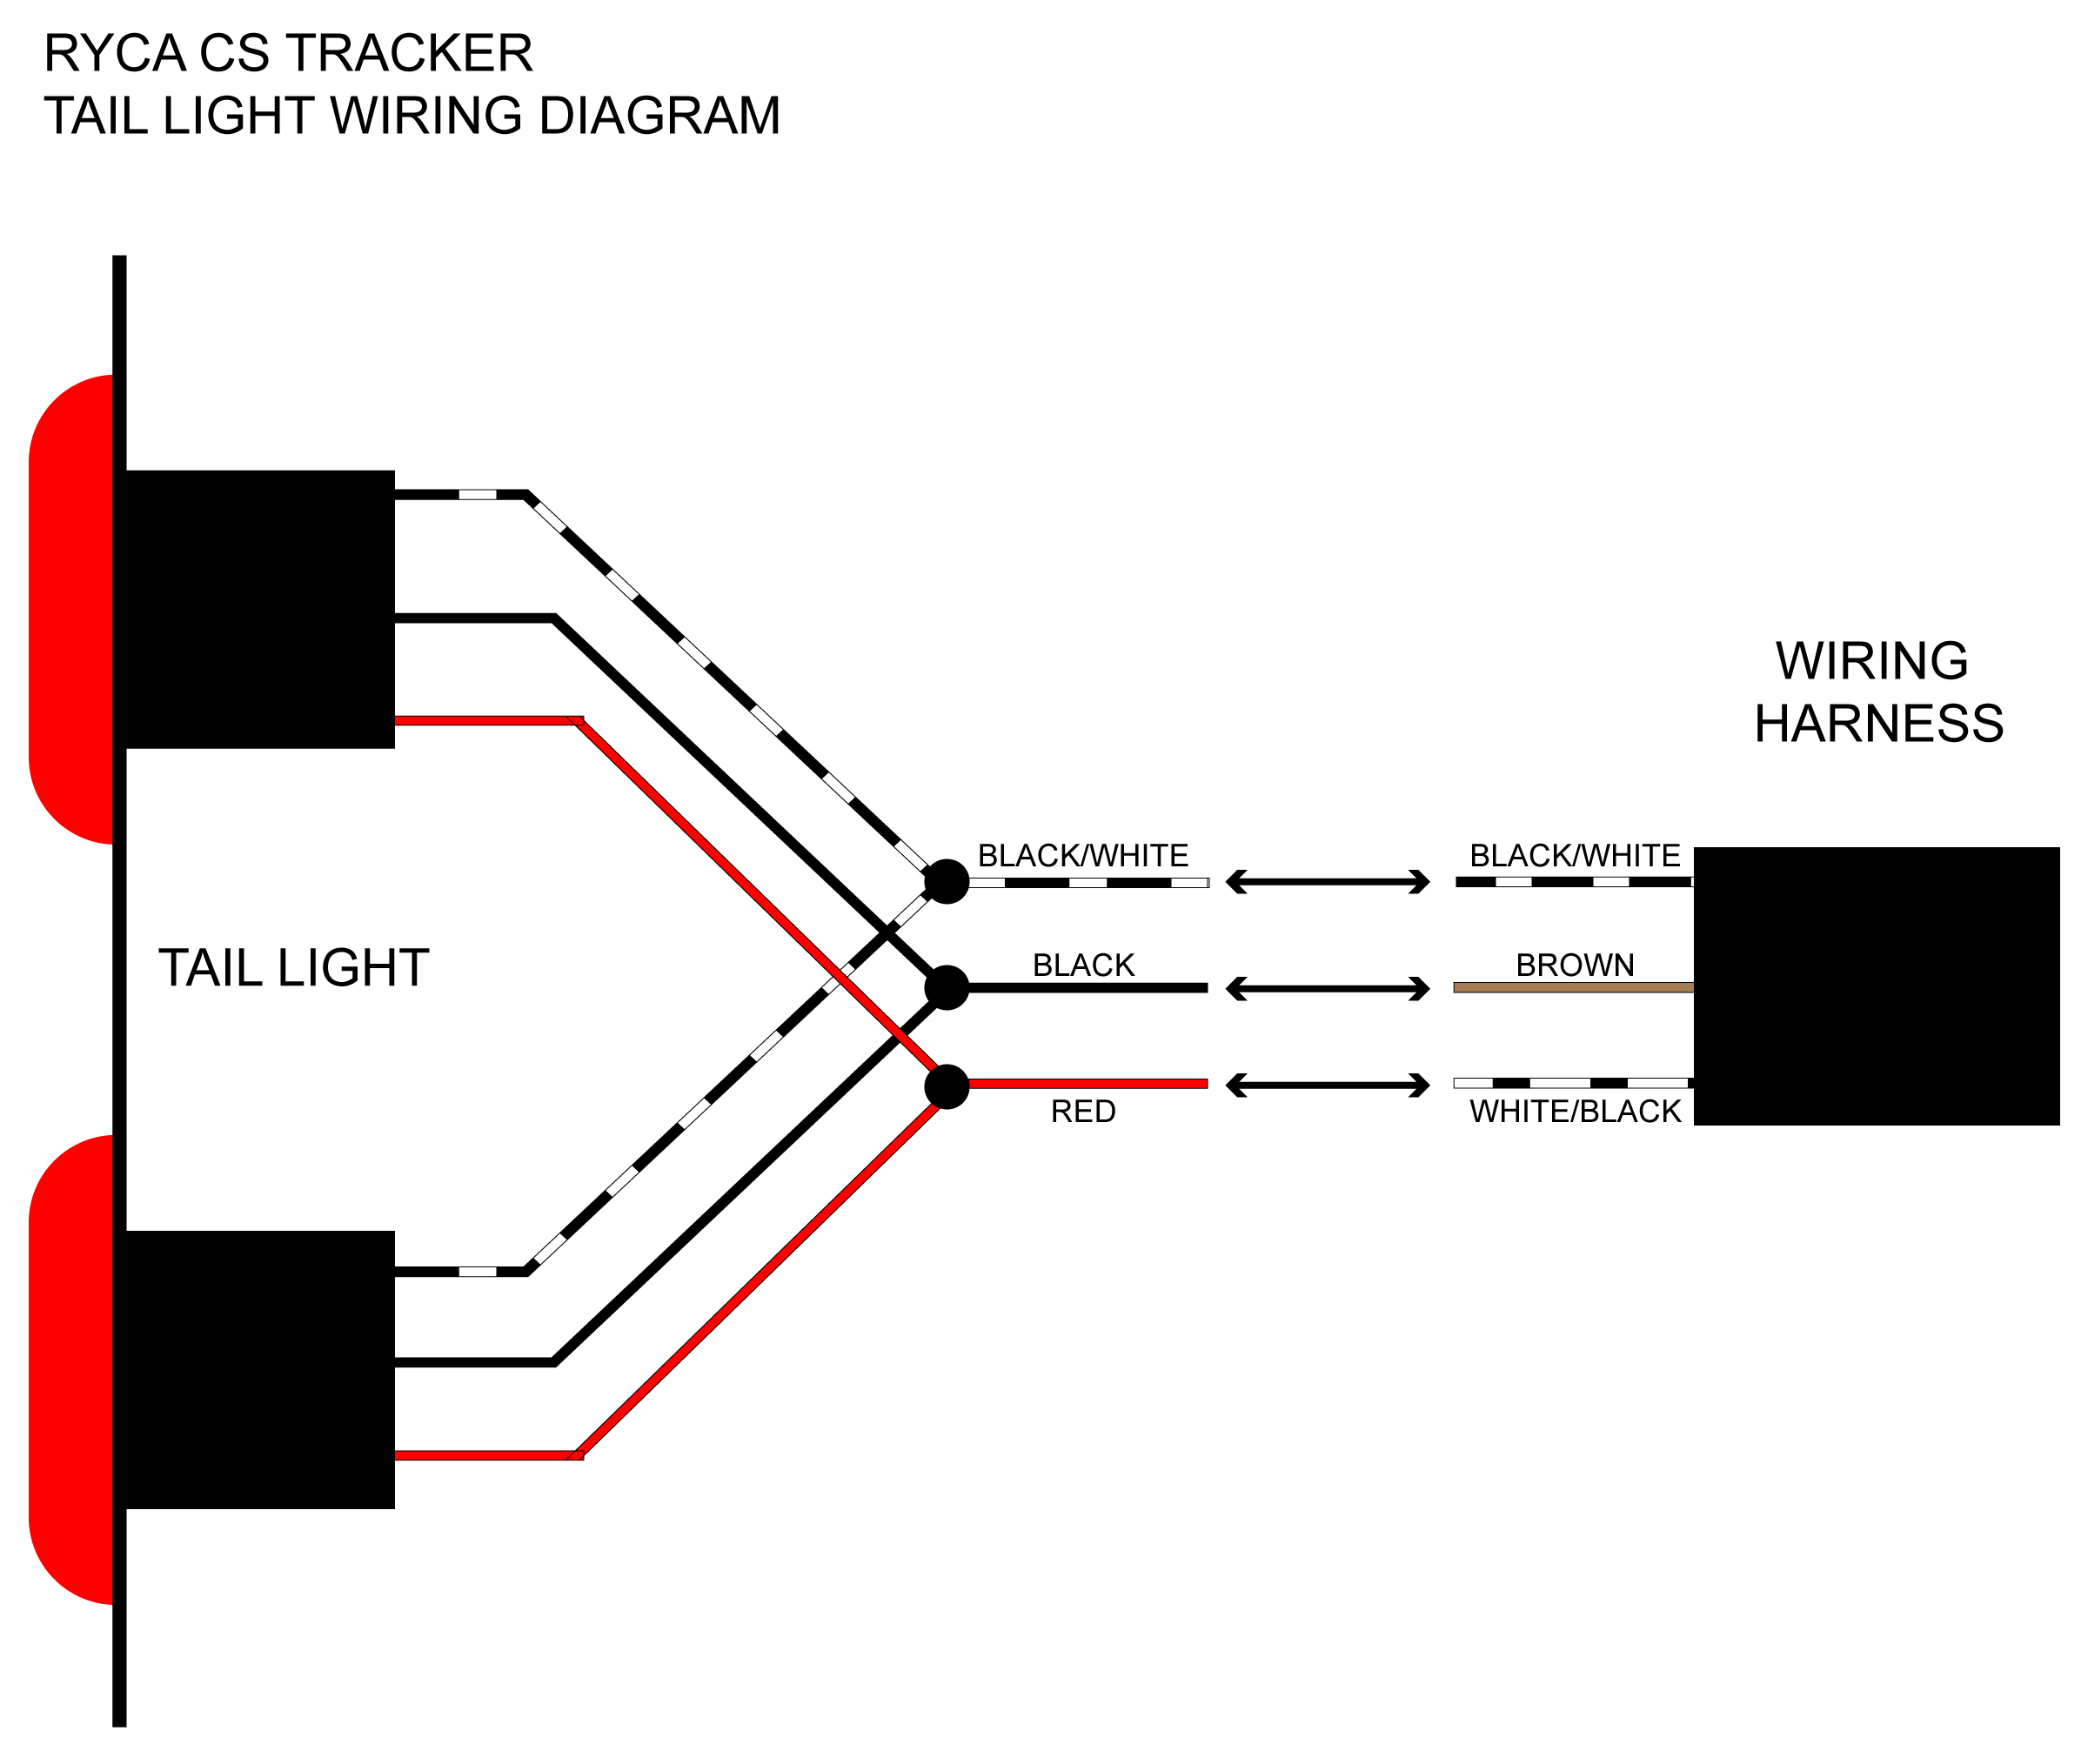 3 wire trailer diagram schema wiring diagram 4 prong trailer wiring diagram 4 Prong Trailer Wiring Diagram